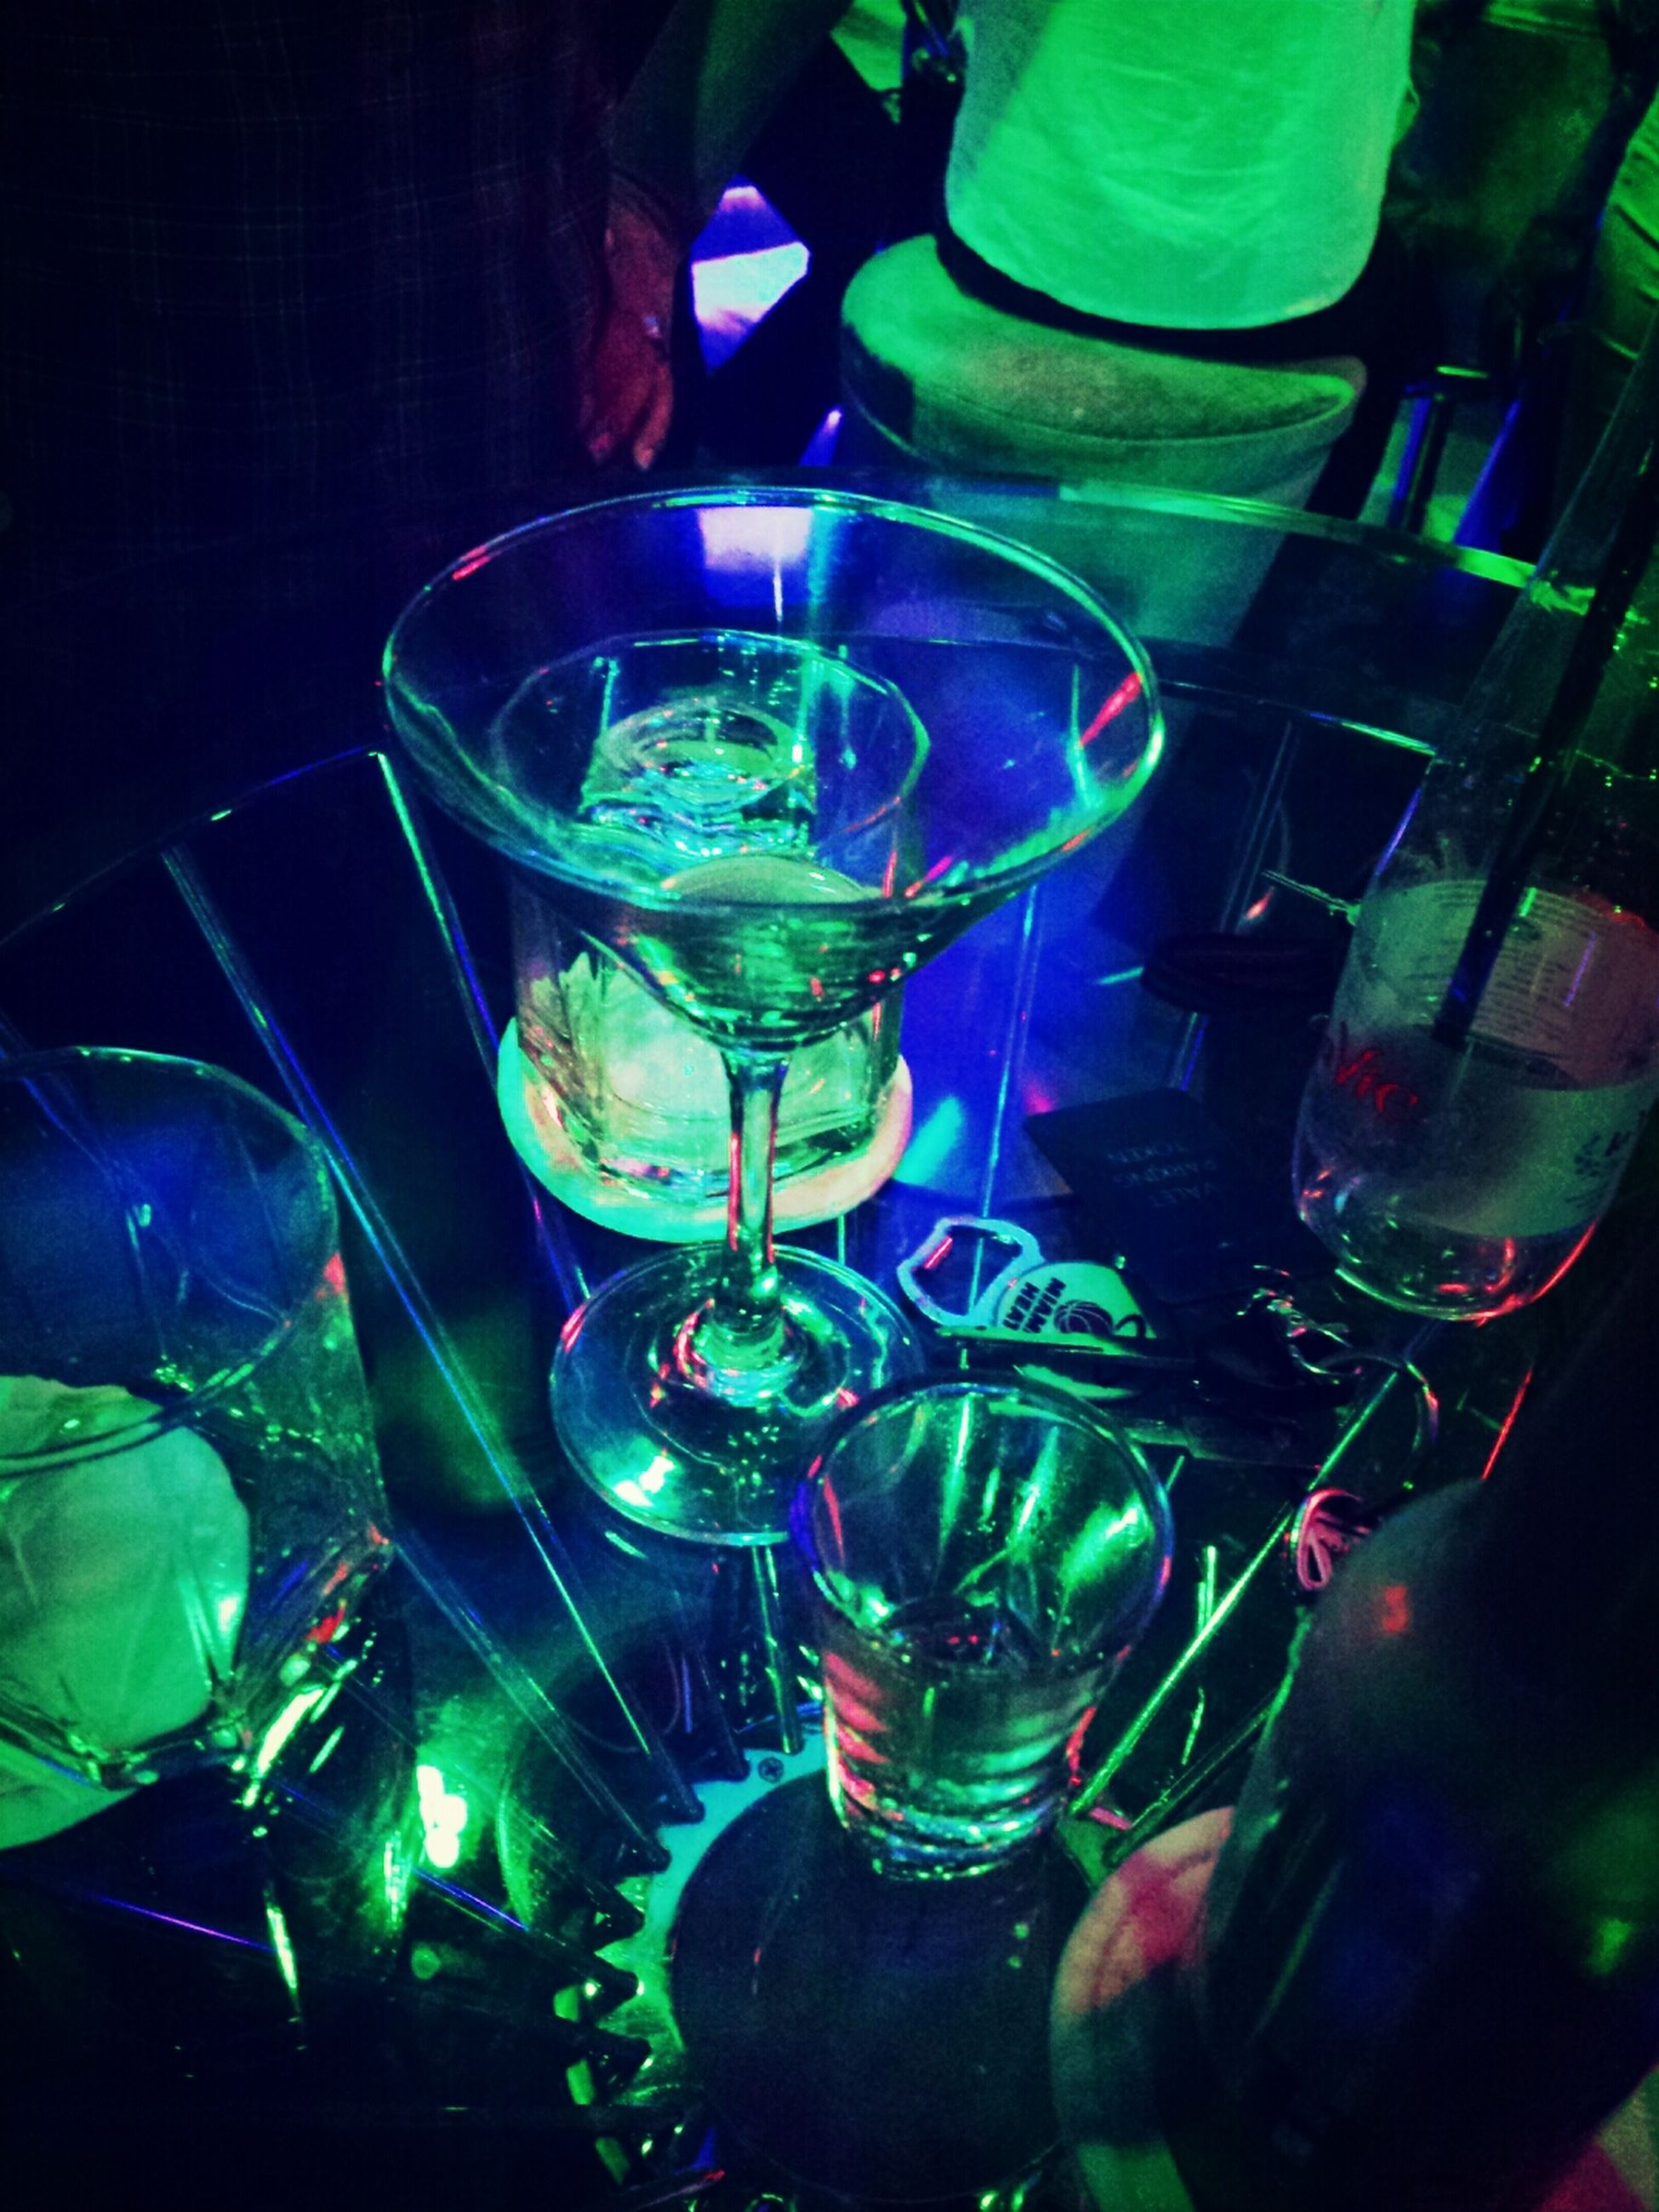 indoors, water, drinking glass, glass - material, transparent, refreshment, drink, close-up, reflection, wineglass, high angle view, glass, green color, food and drink, alcohol, freshness, table, bottle, no people